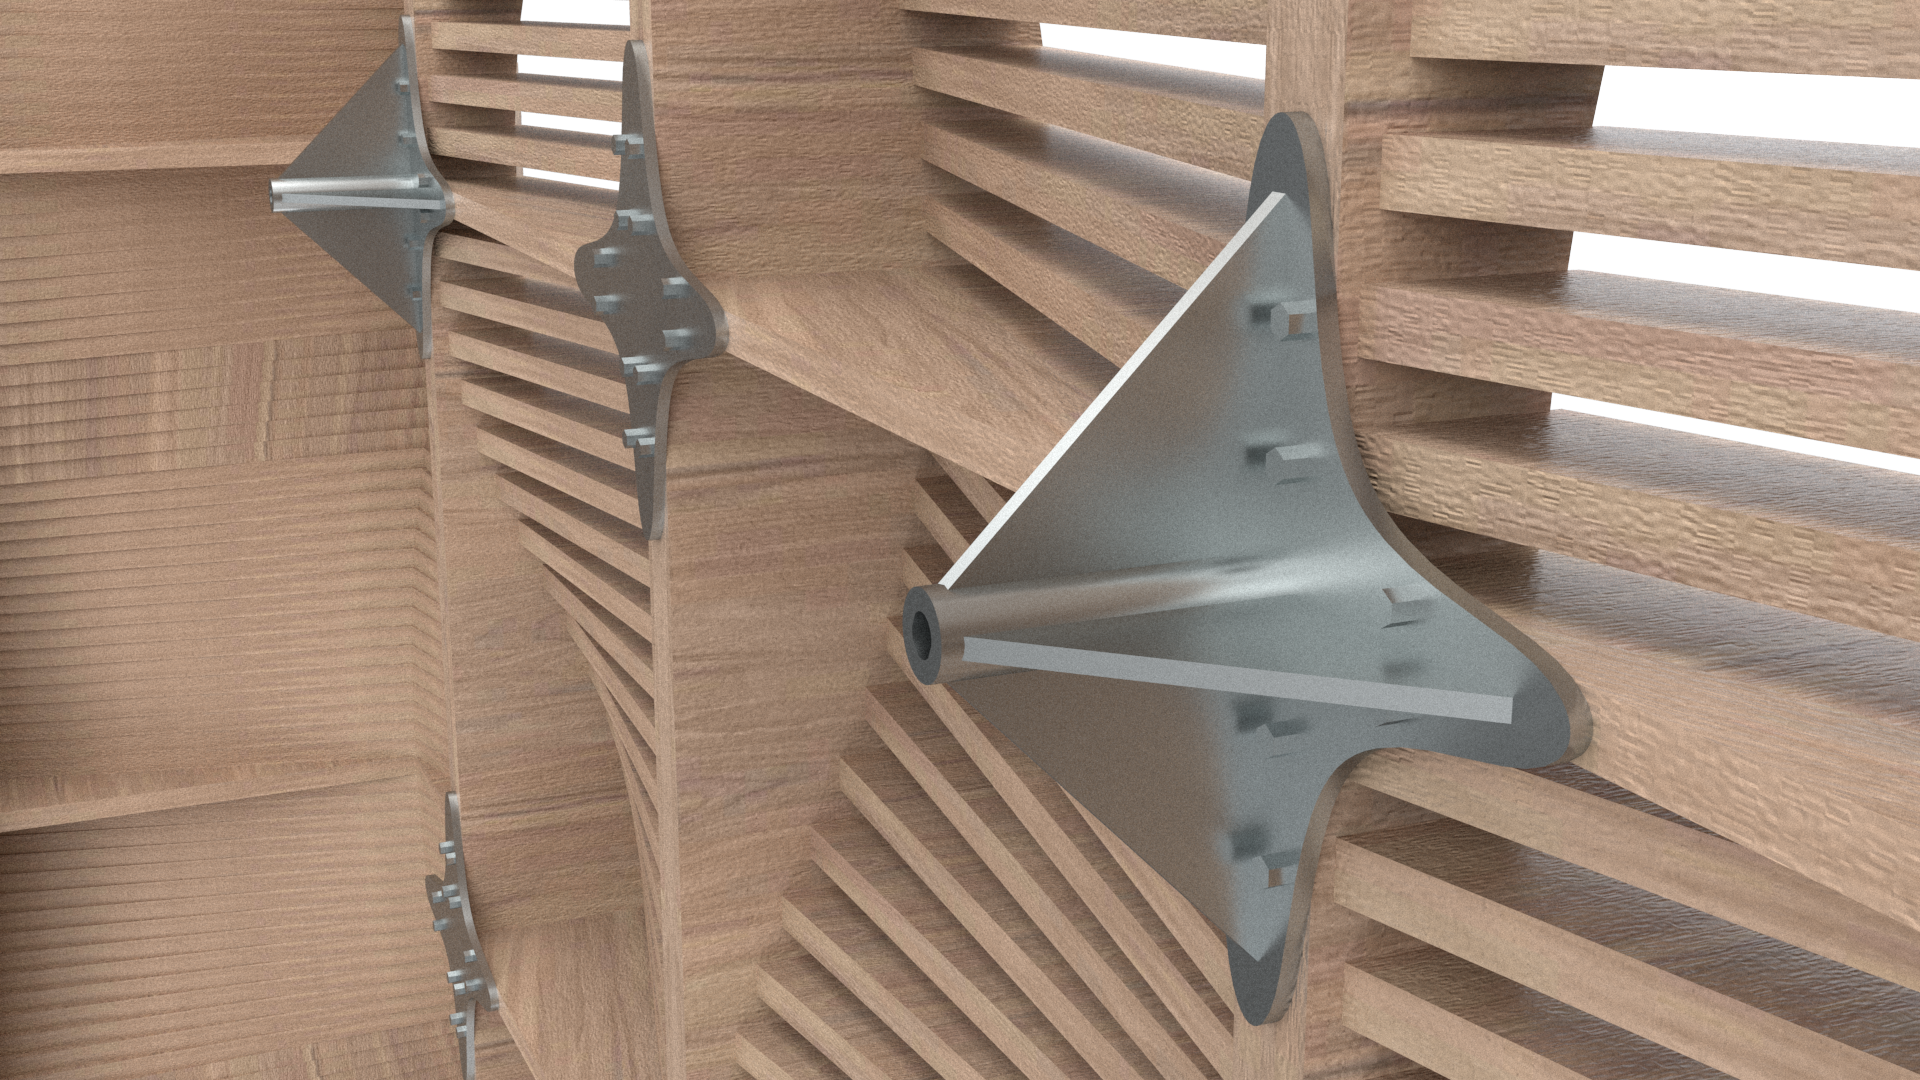 Detailed look at the connections between panels and the support system. These both provide support in between wall modules and attach to the structural supports.